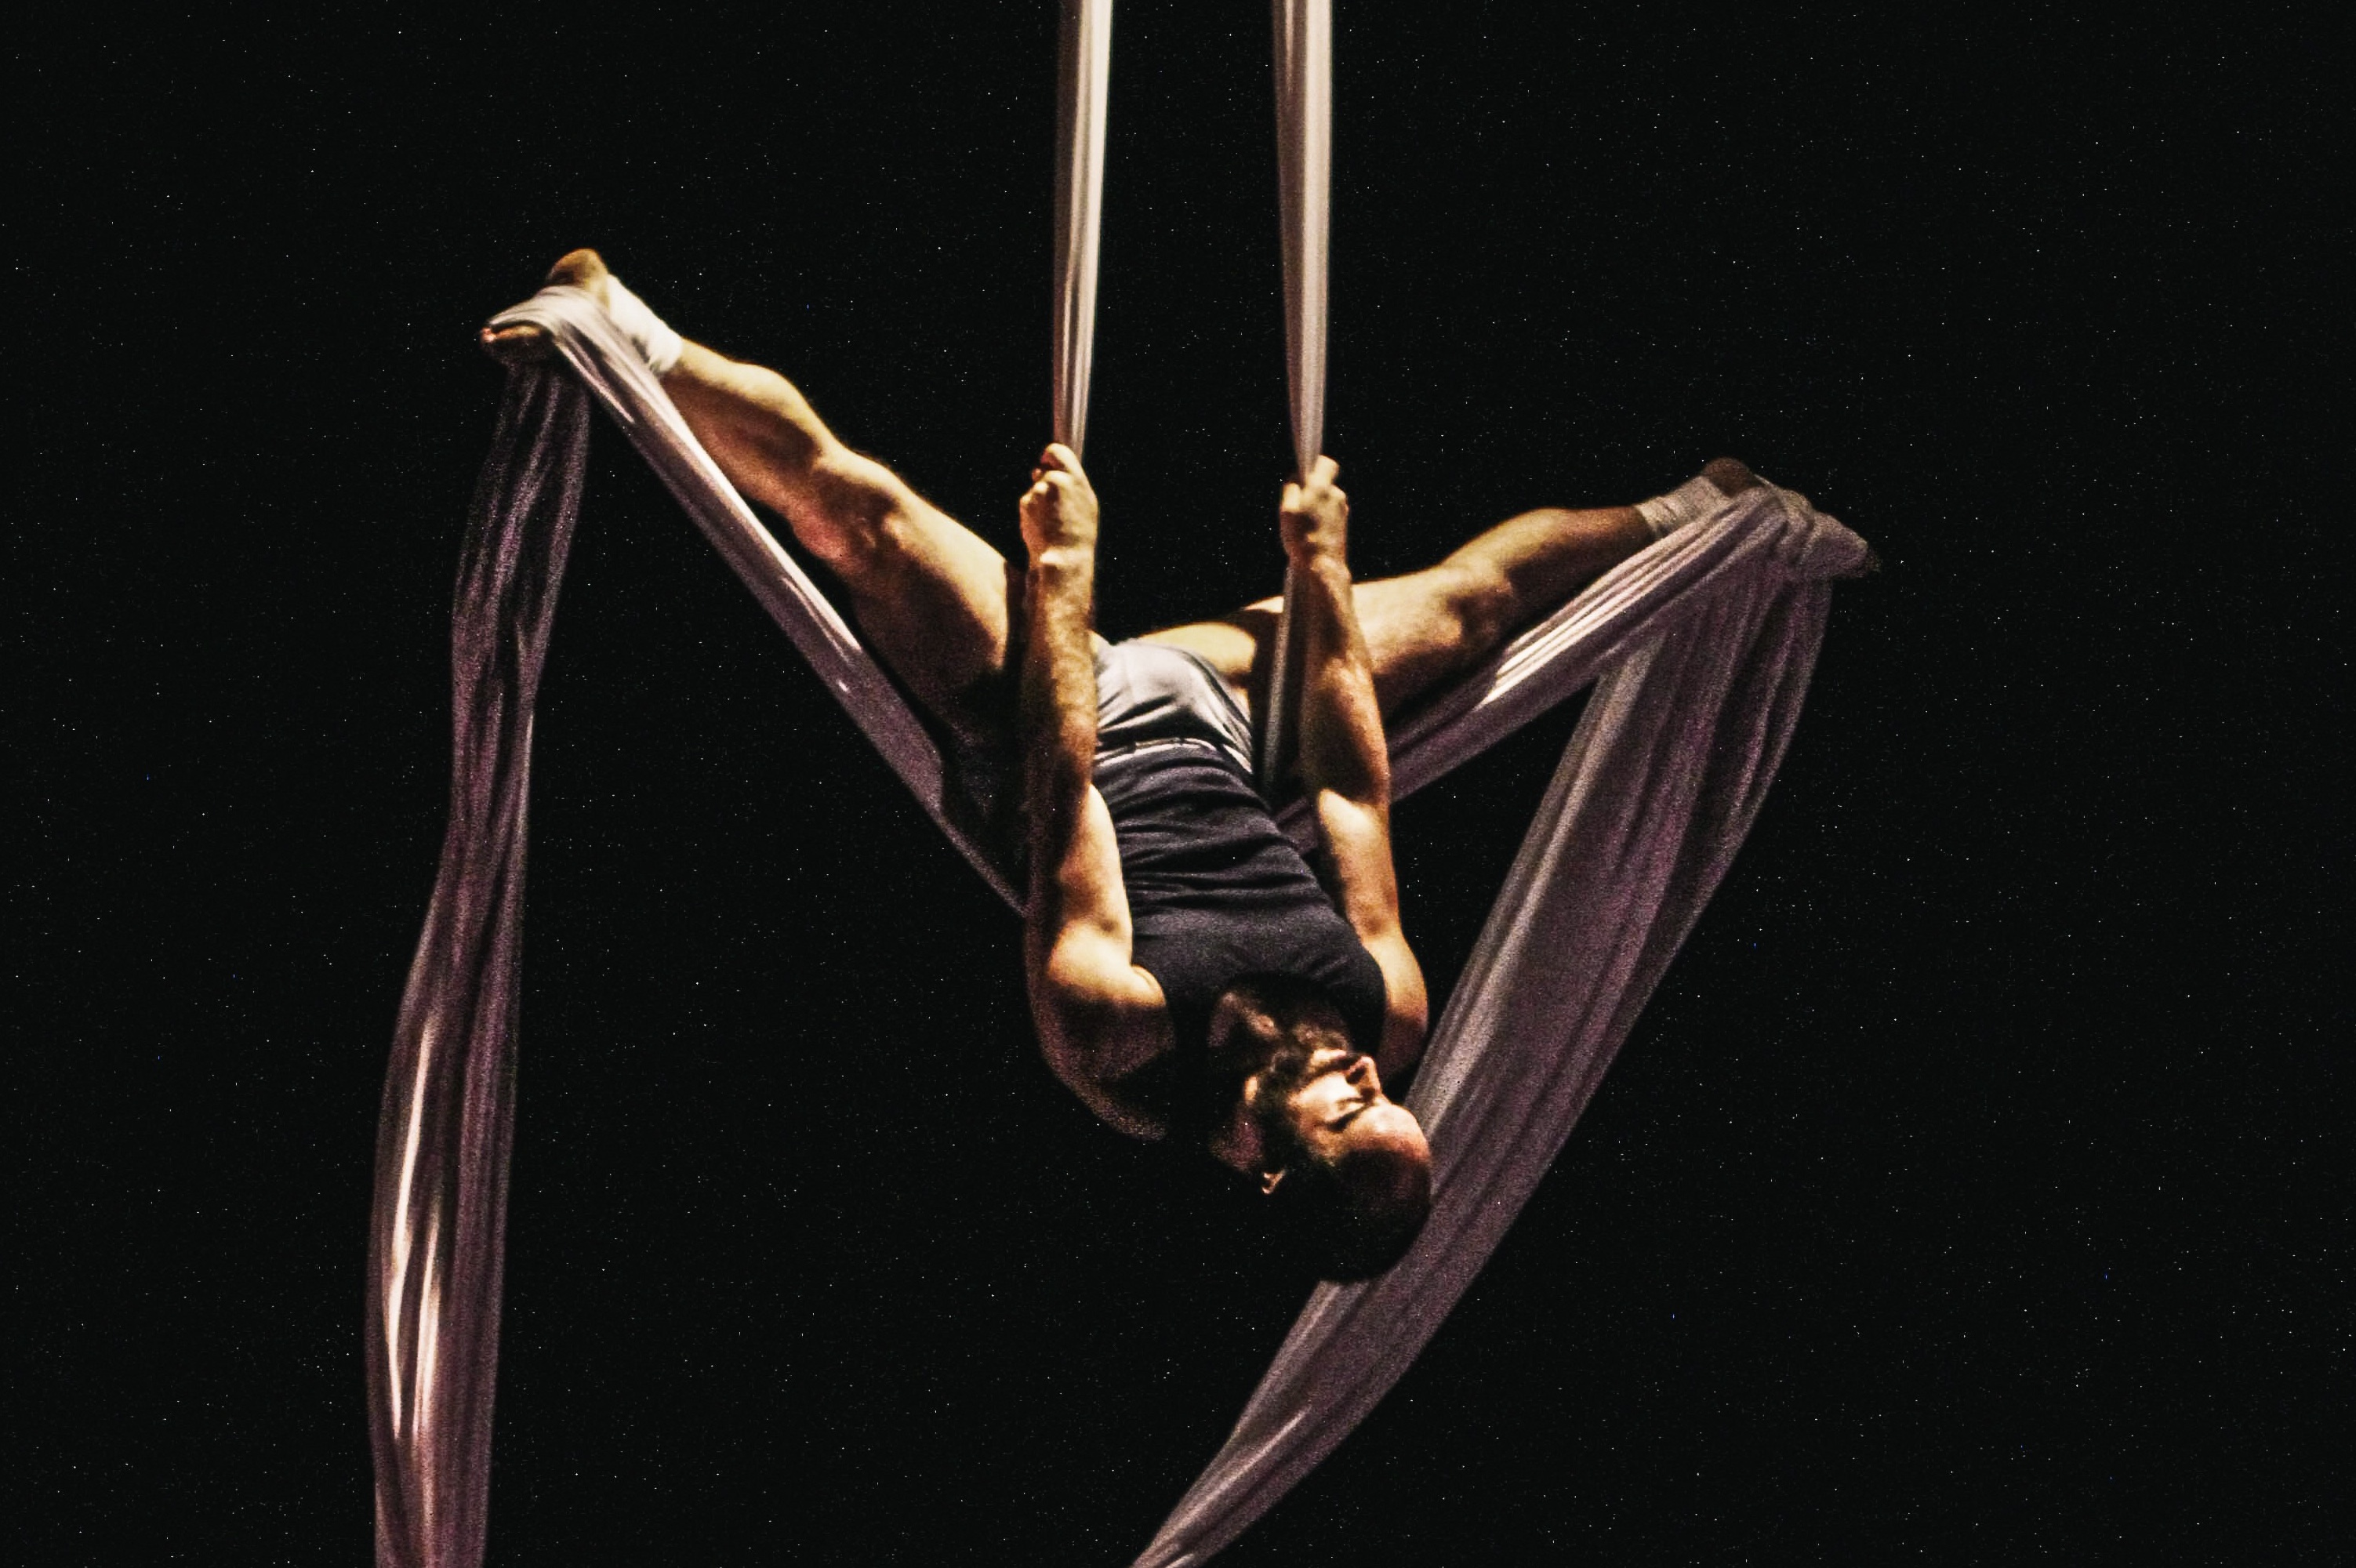 Love and Gravity. Cooper Stanton. Photo by Julia Nardin. Image courtesy of Acrobatic Conundrum.